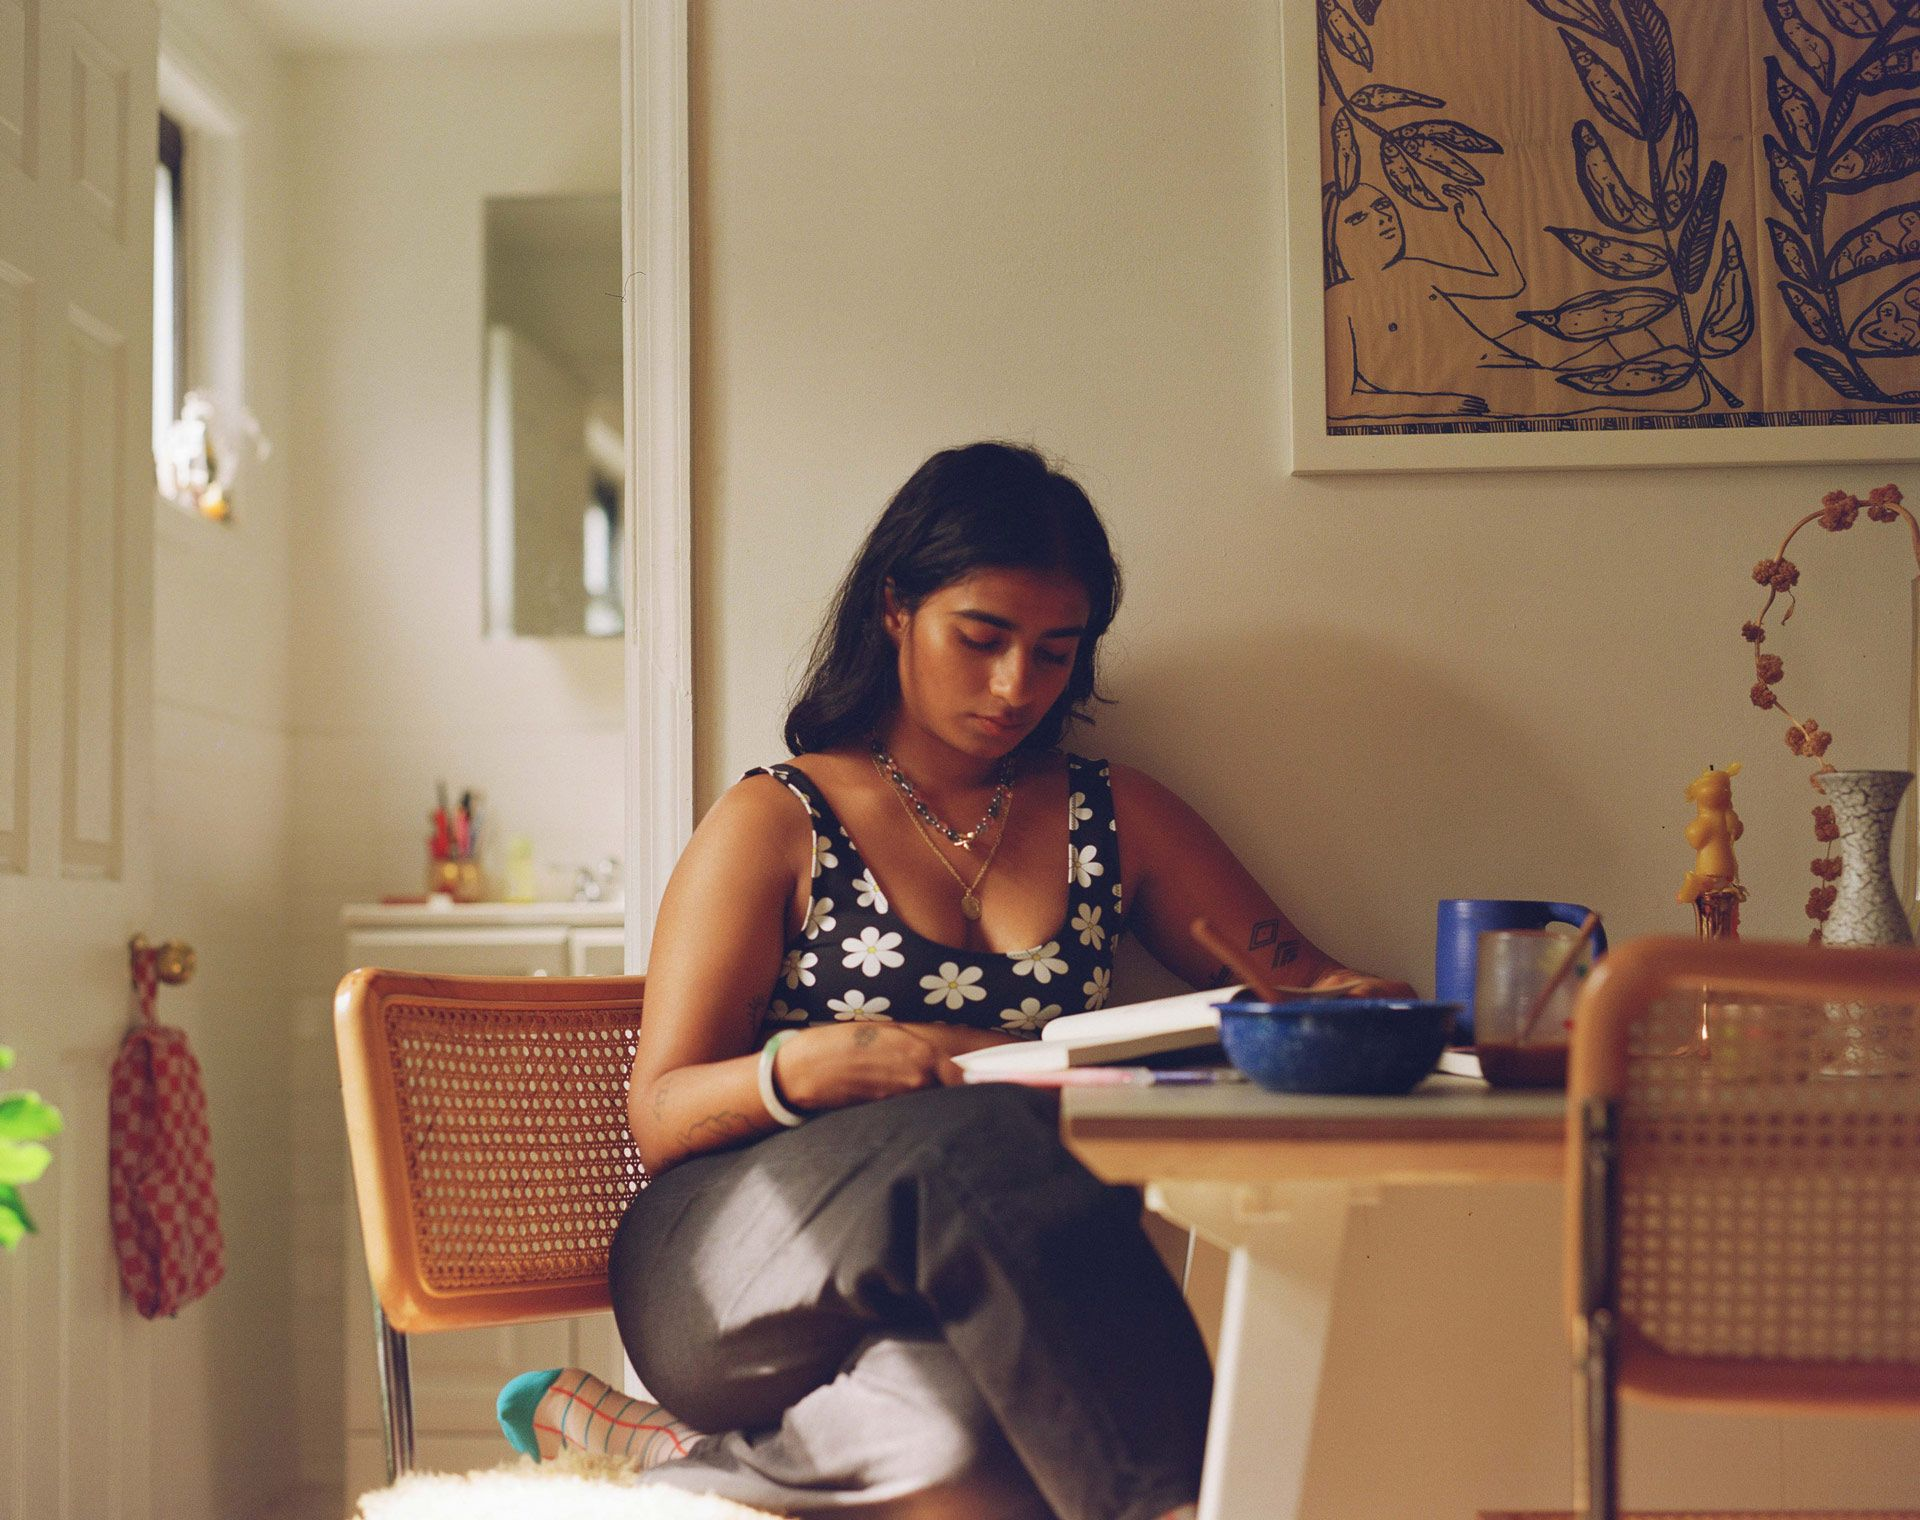 writer Fariha Roisin sitting at her kitchen table while reading wearing black jeans and flower-patterned sports bra photographed by Oumayma B. Tanfous for Levi's